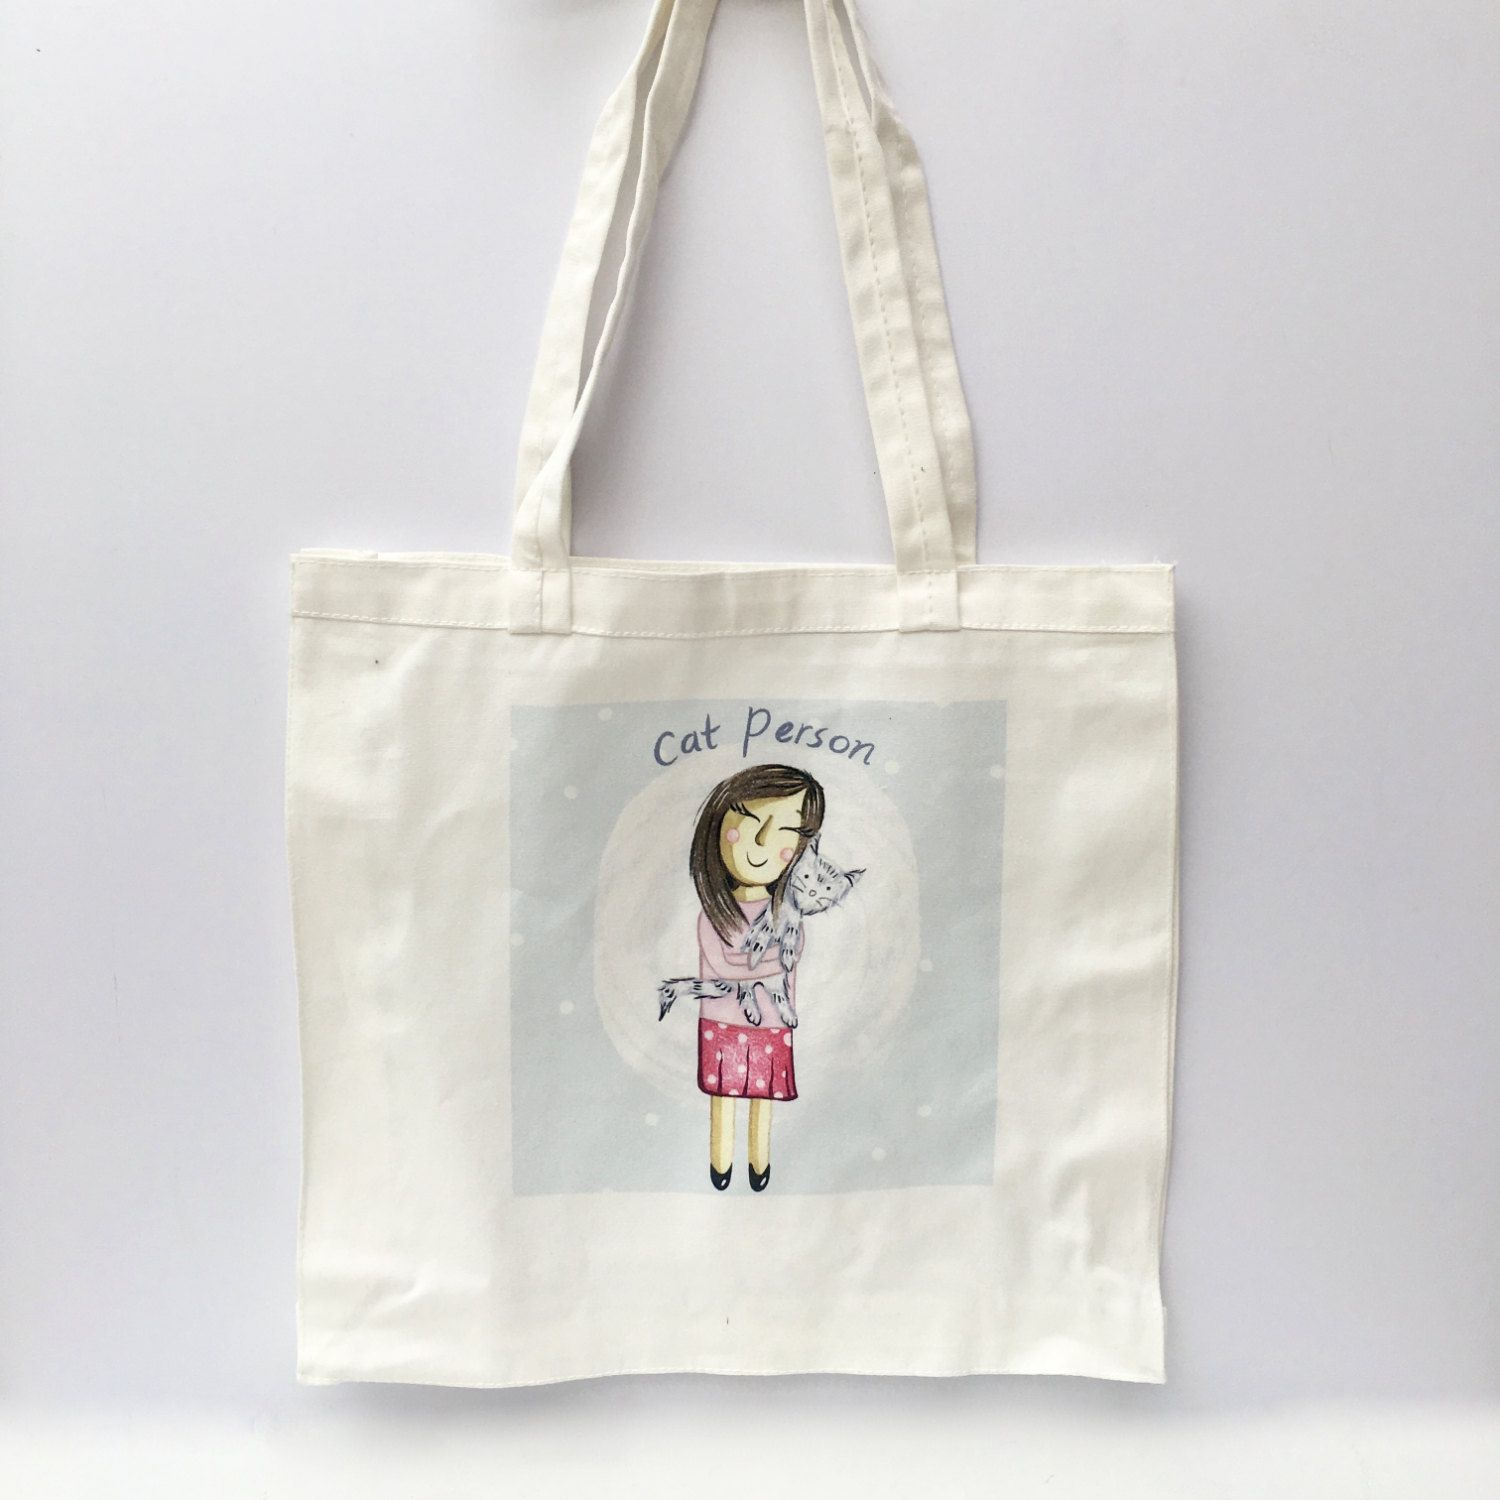 23deb81ea6 Cat Person White Canvas Tote Bag, Illustrated Cute, Girly Bag for ...